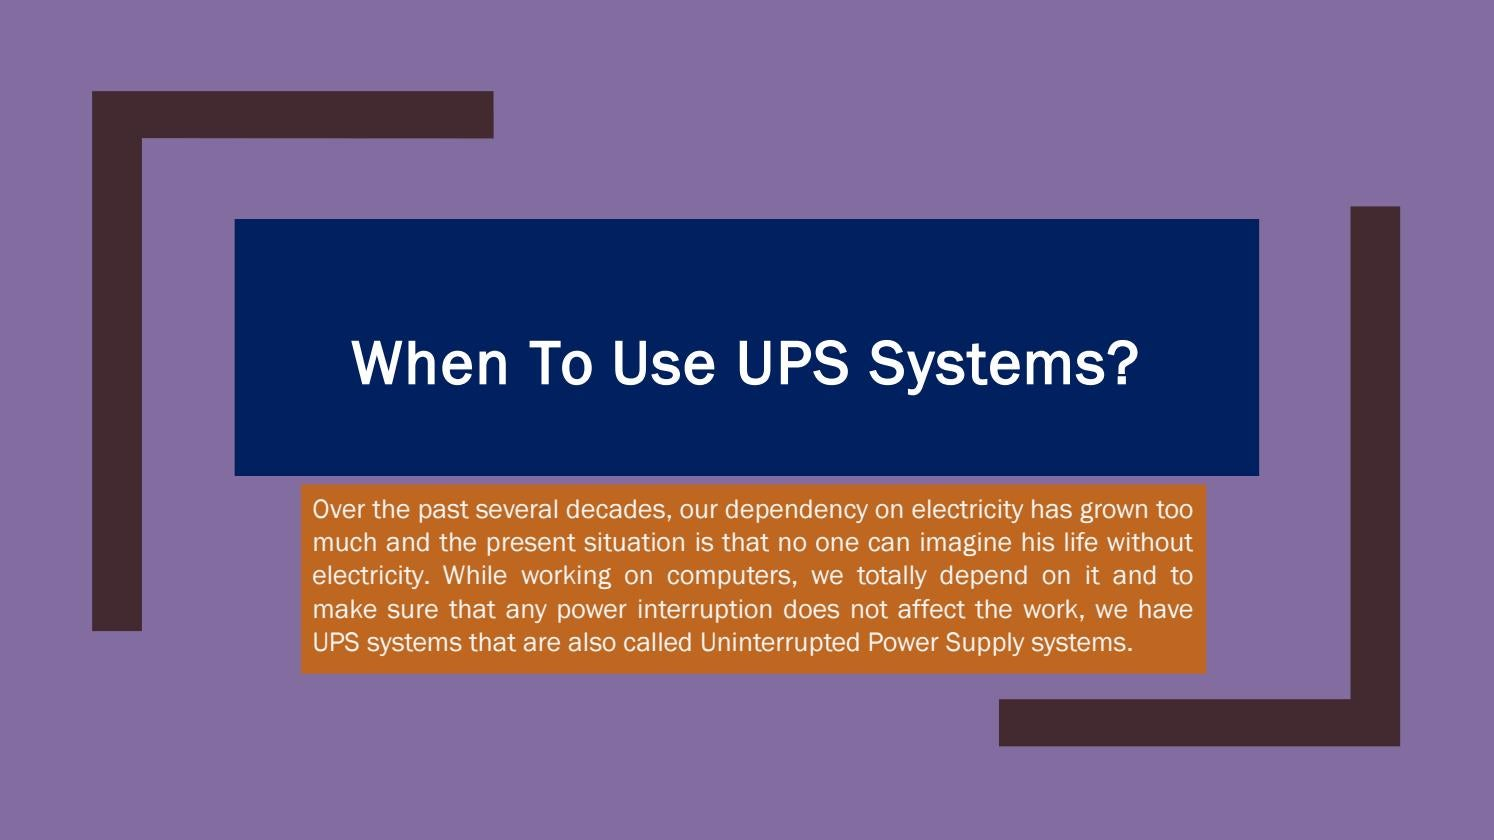 When to use ups systems by Rdtechnology - issuu